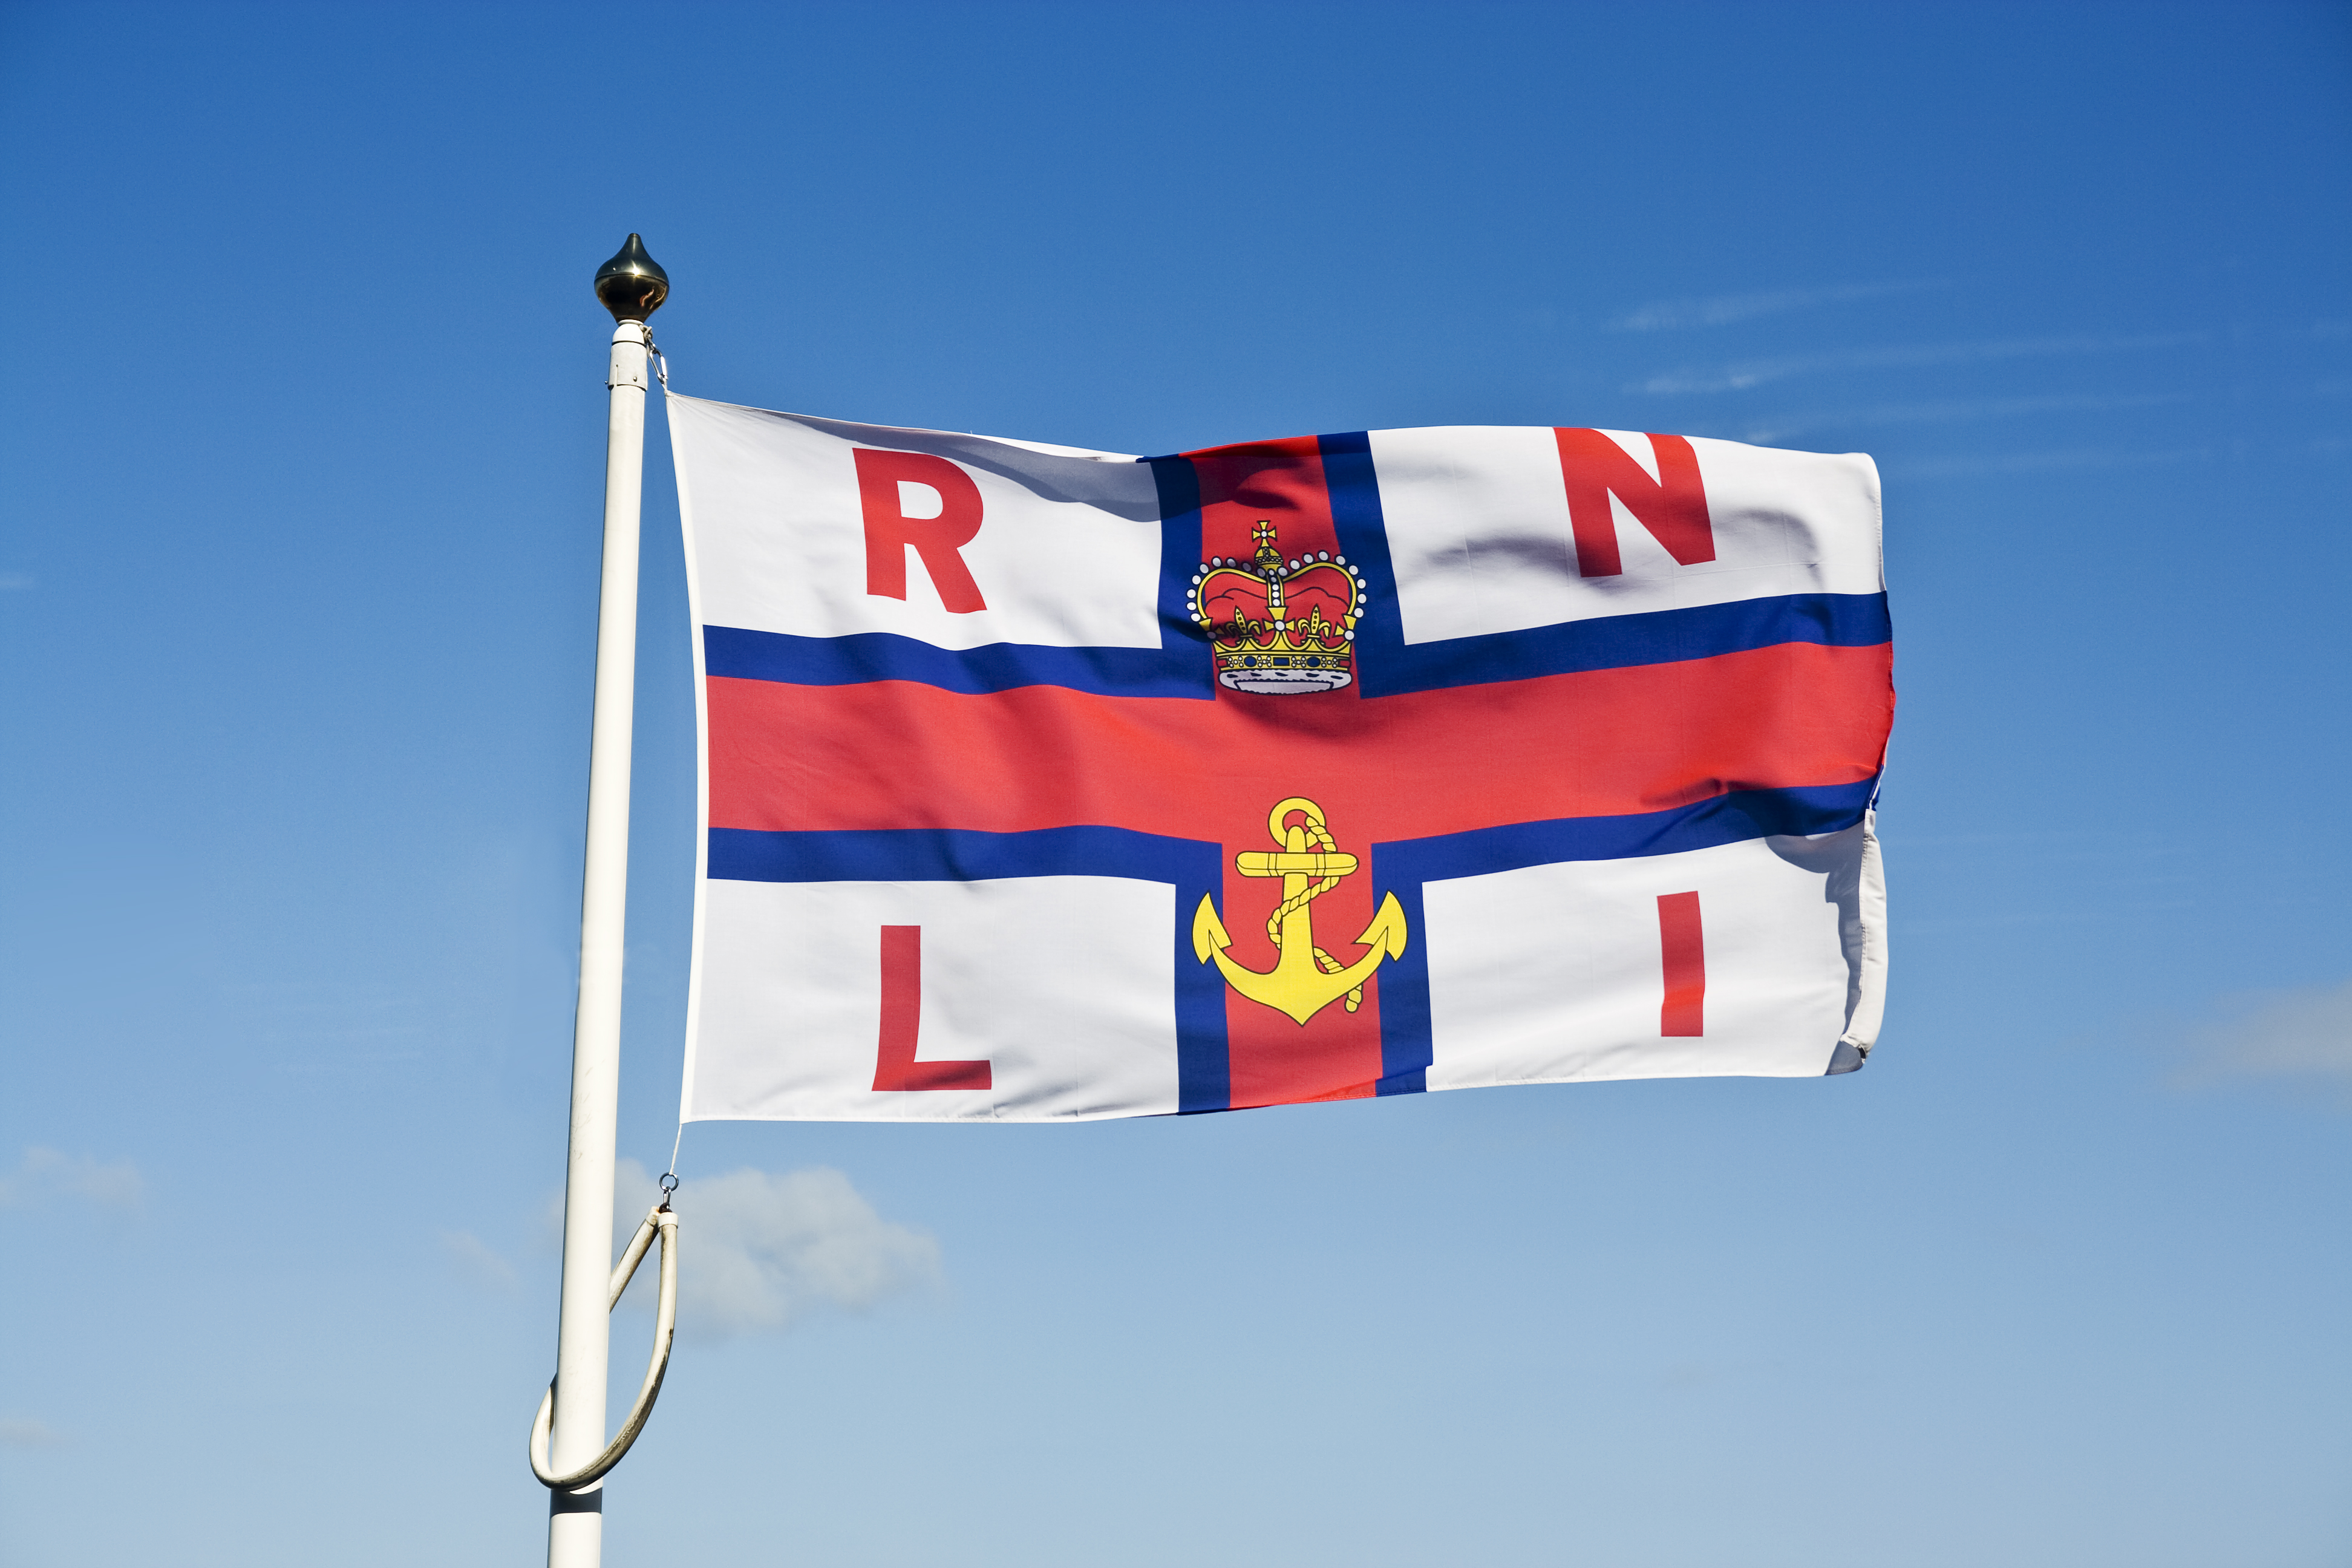 RNLI flag in the sky